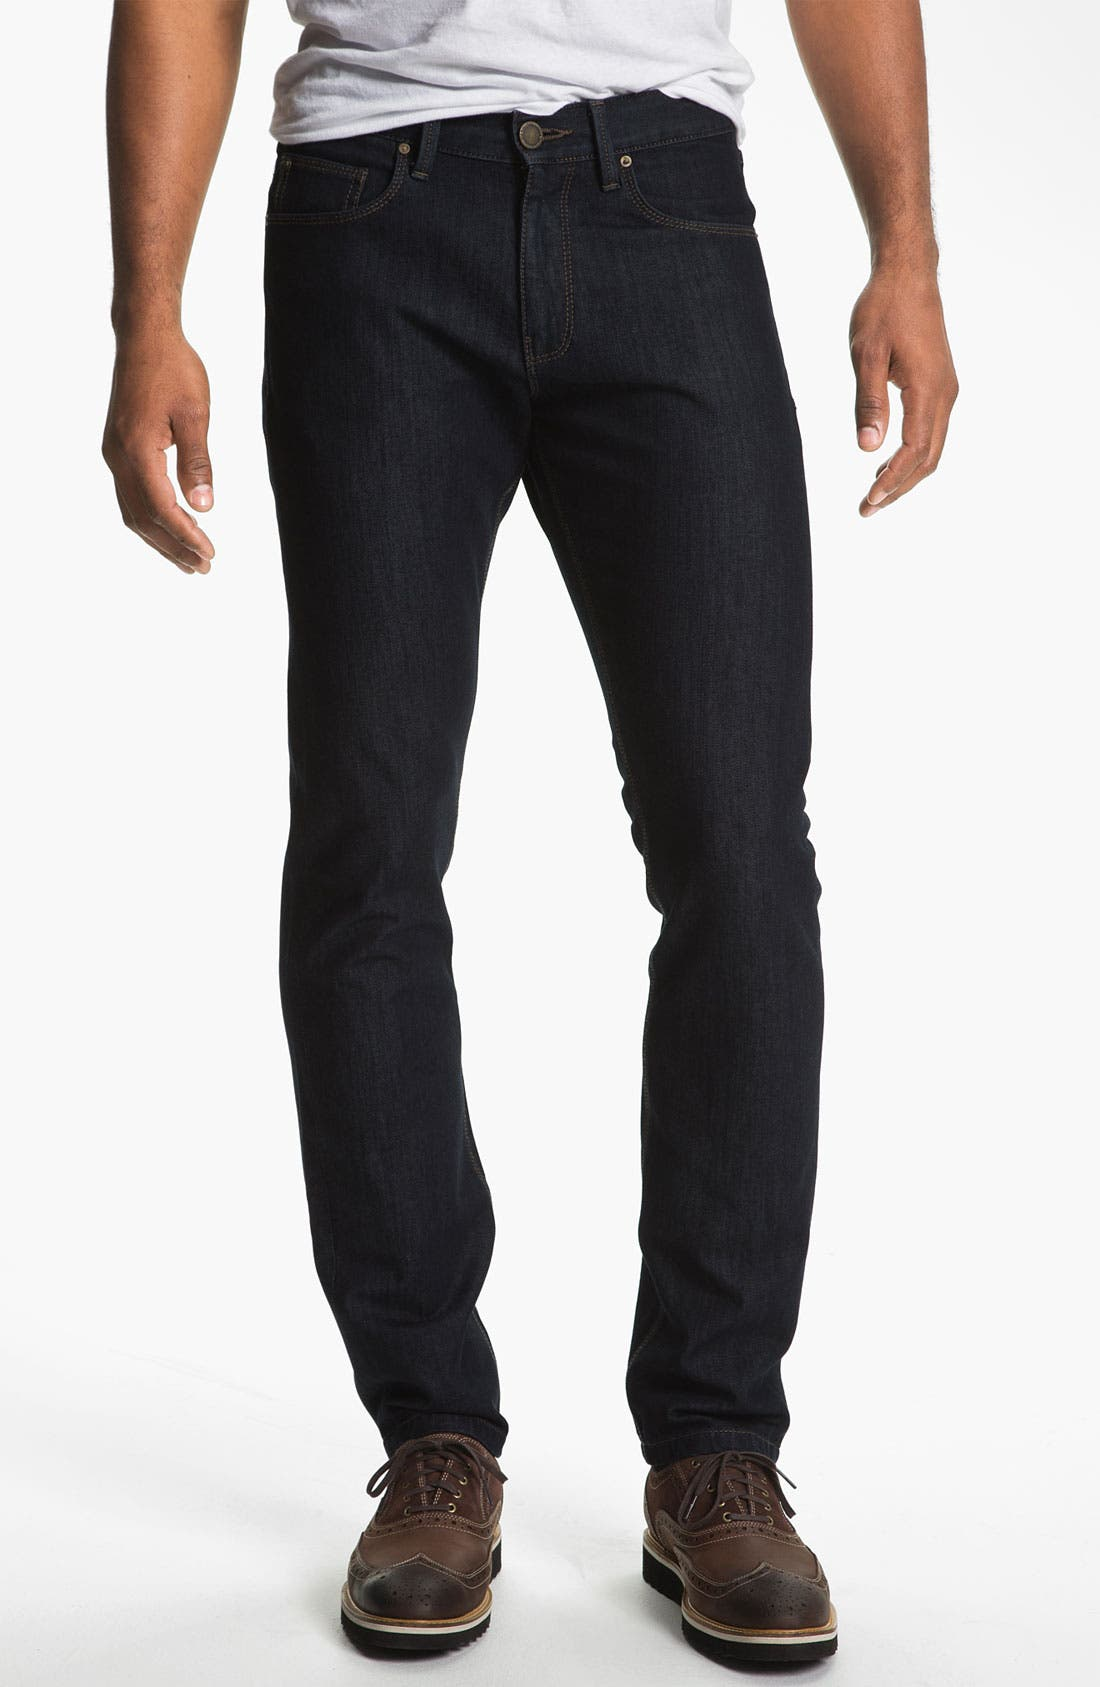 Alternate Image 1 Selected - DL1961 'Russell' Slim Straight Leg Jeans (Viper)